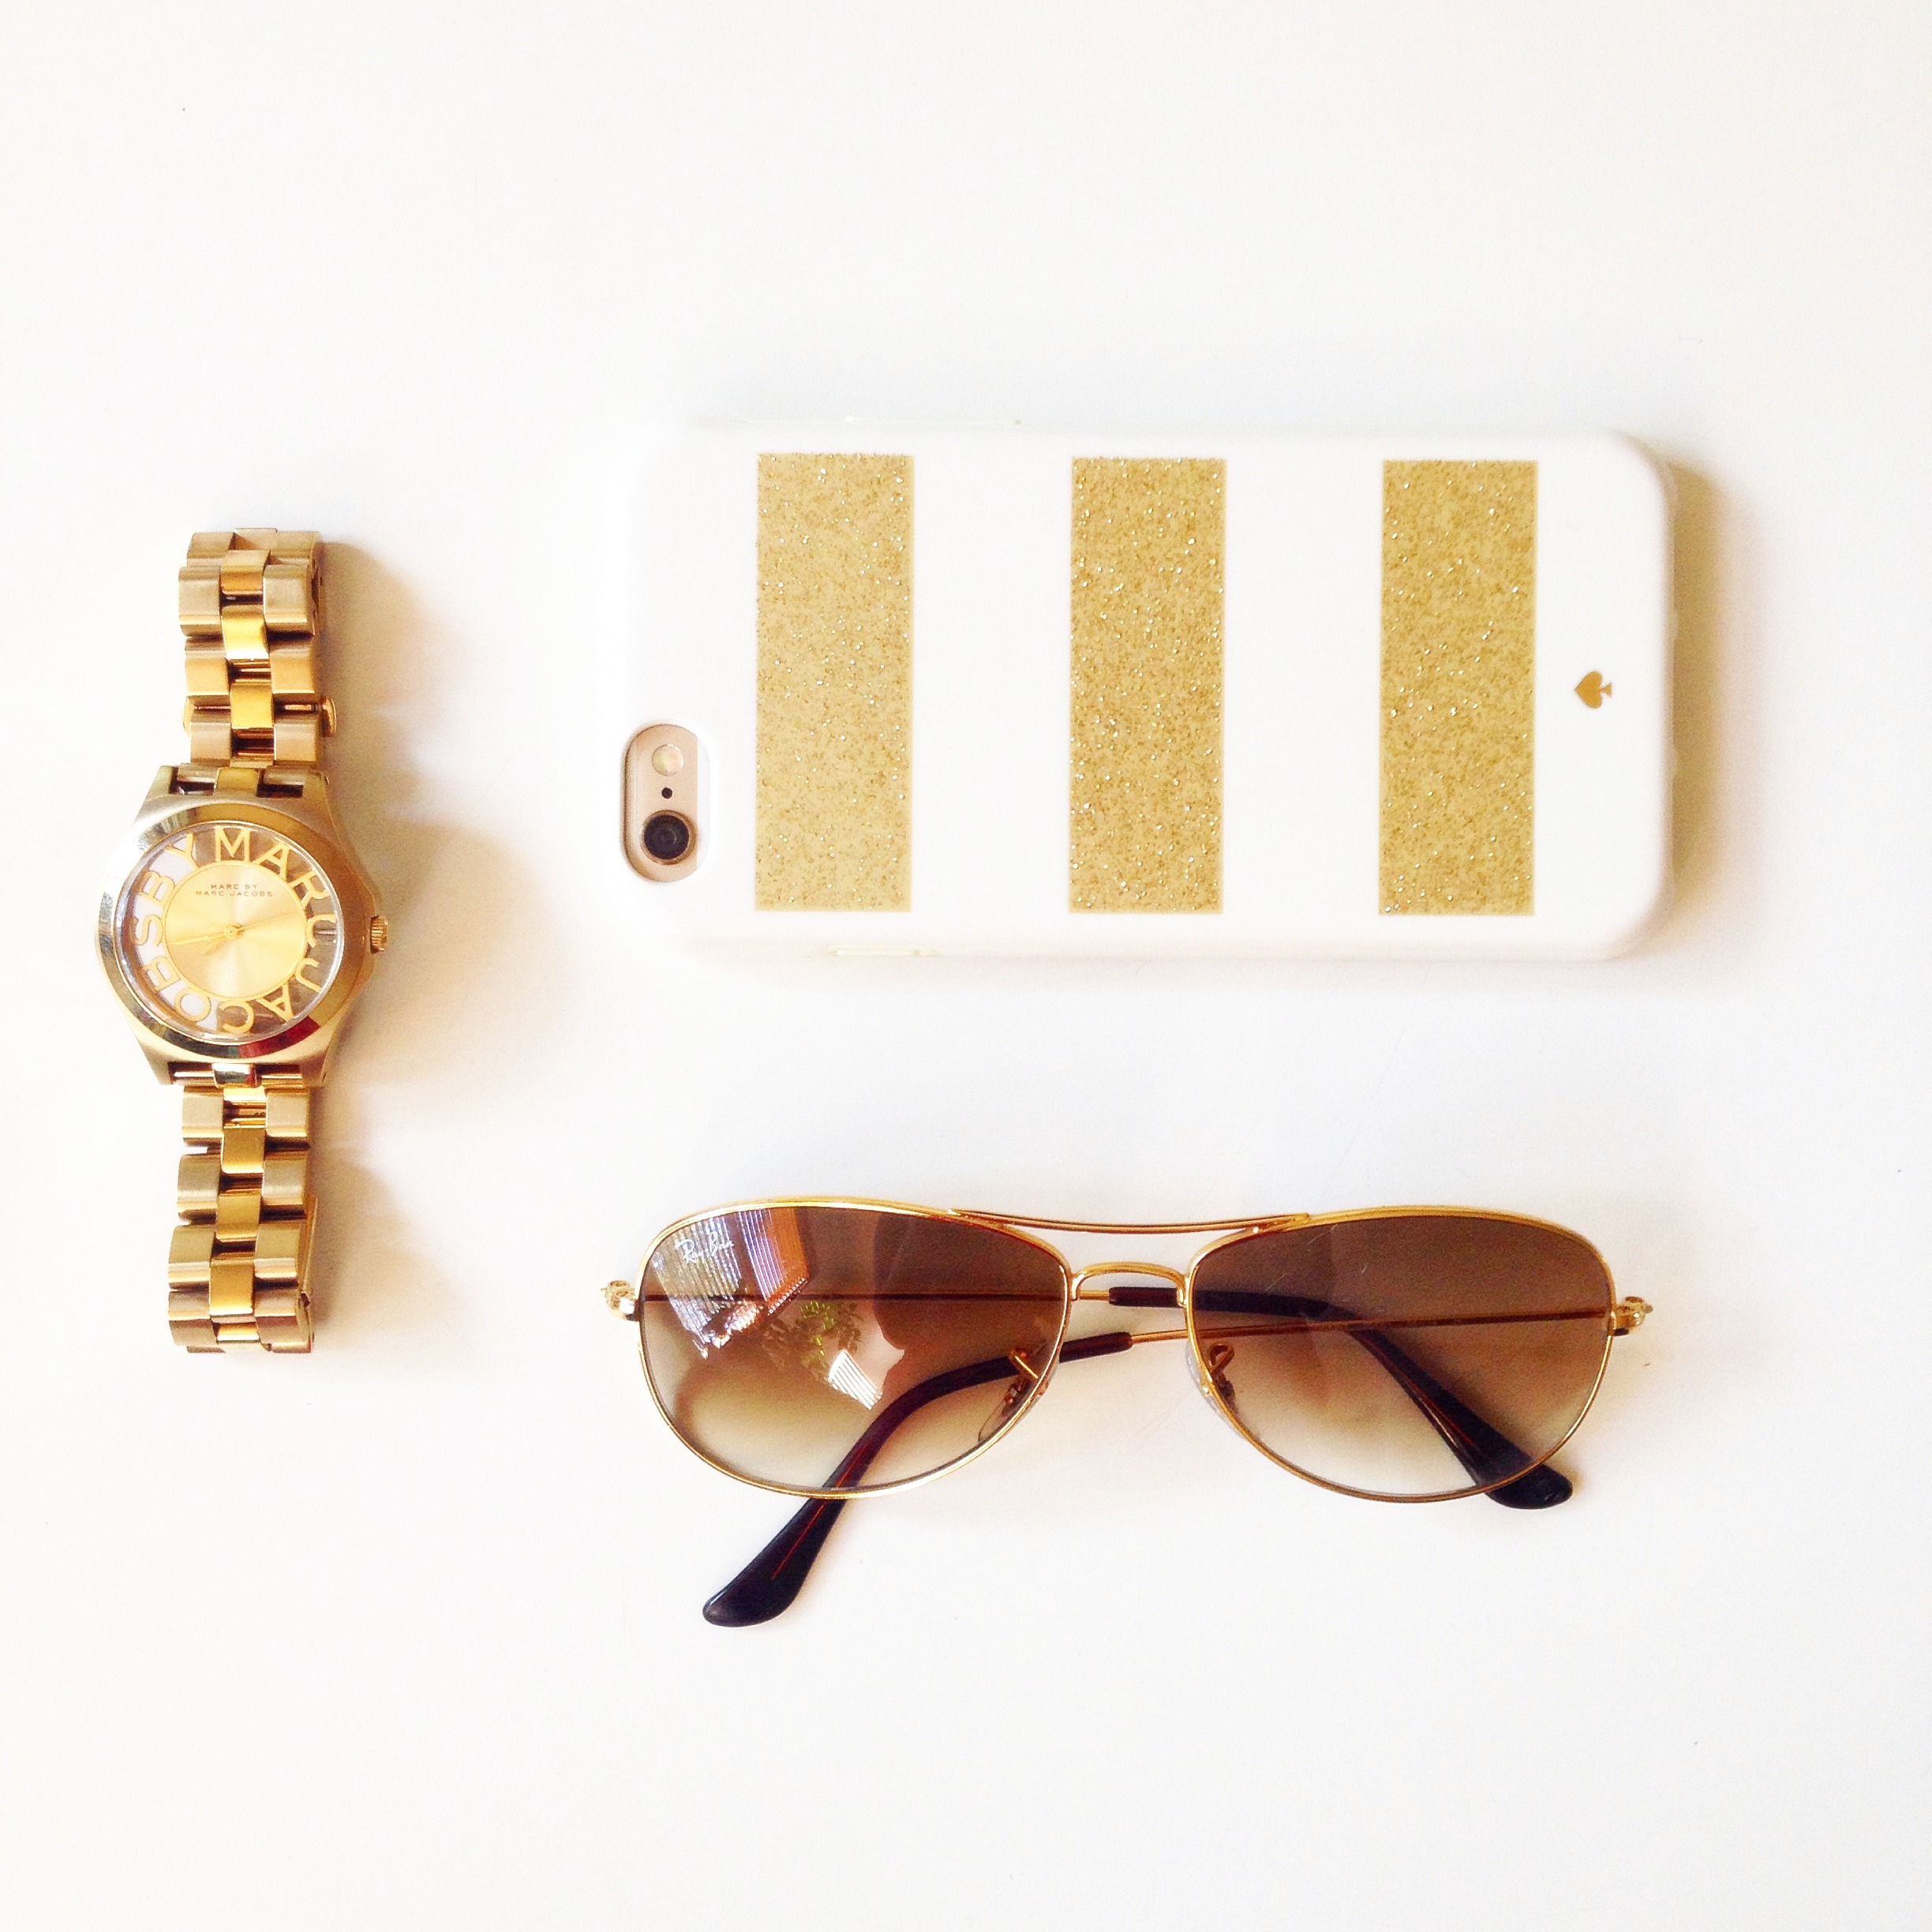 Marc Jacobs watch, Iphone 6, Ray Ban Sunglasses